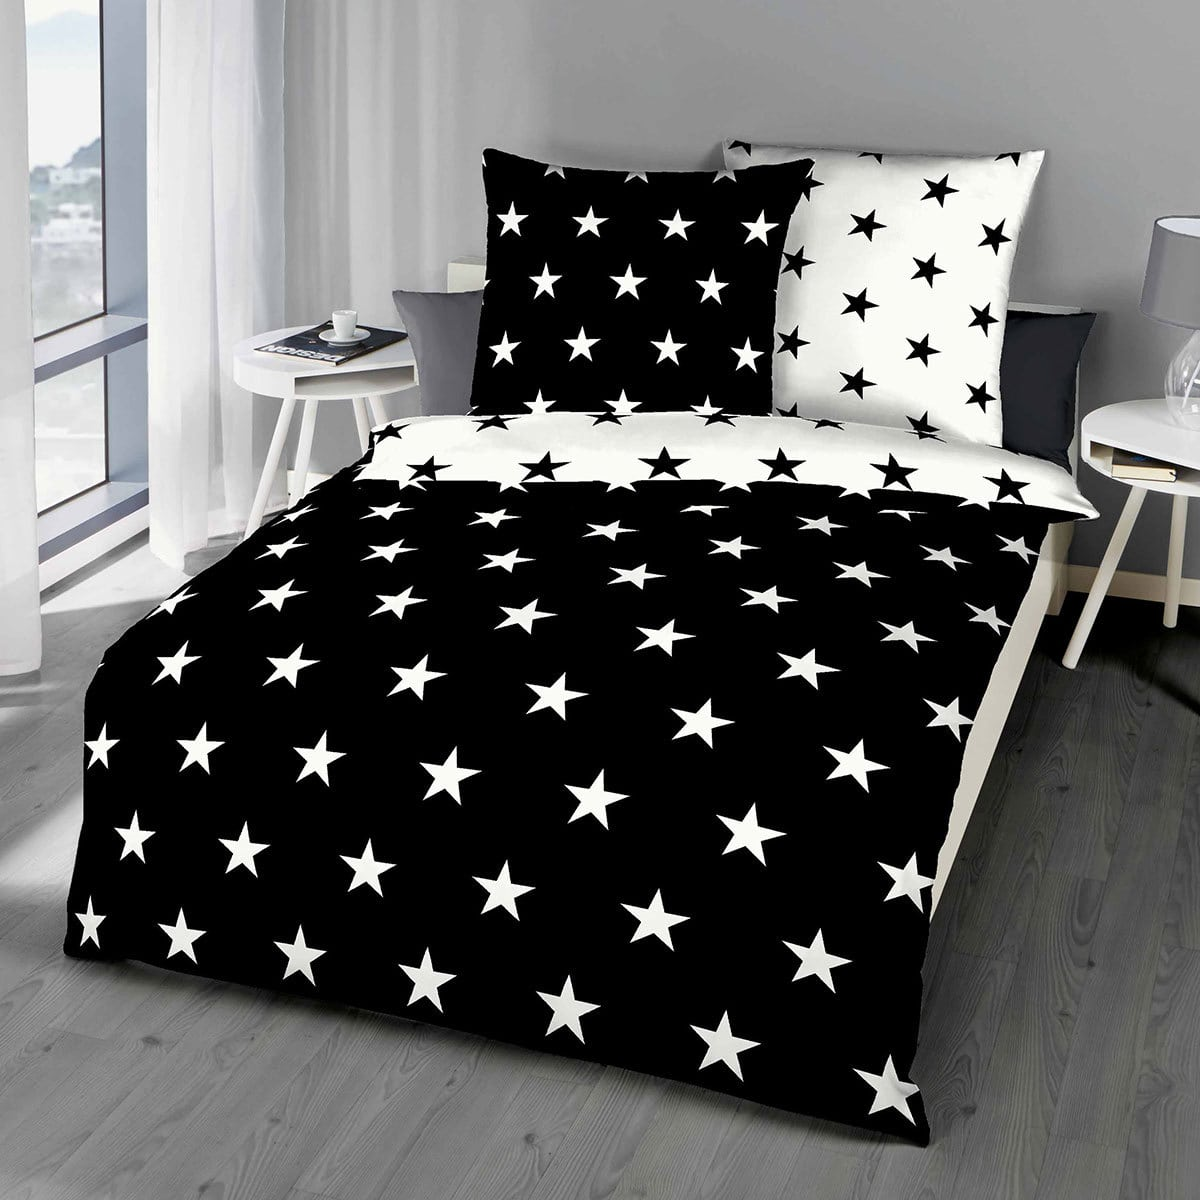 bettwarenshop biber bettw sche stars schwarz g nstig online kaufen bei bettwaren shop. Black Bedroom Furniture Sets. Home Design Ideas